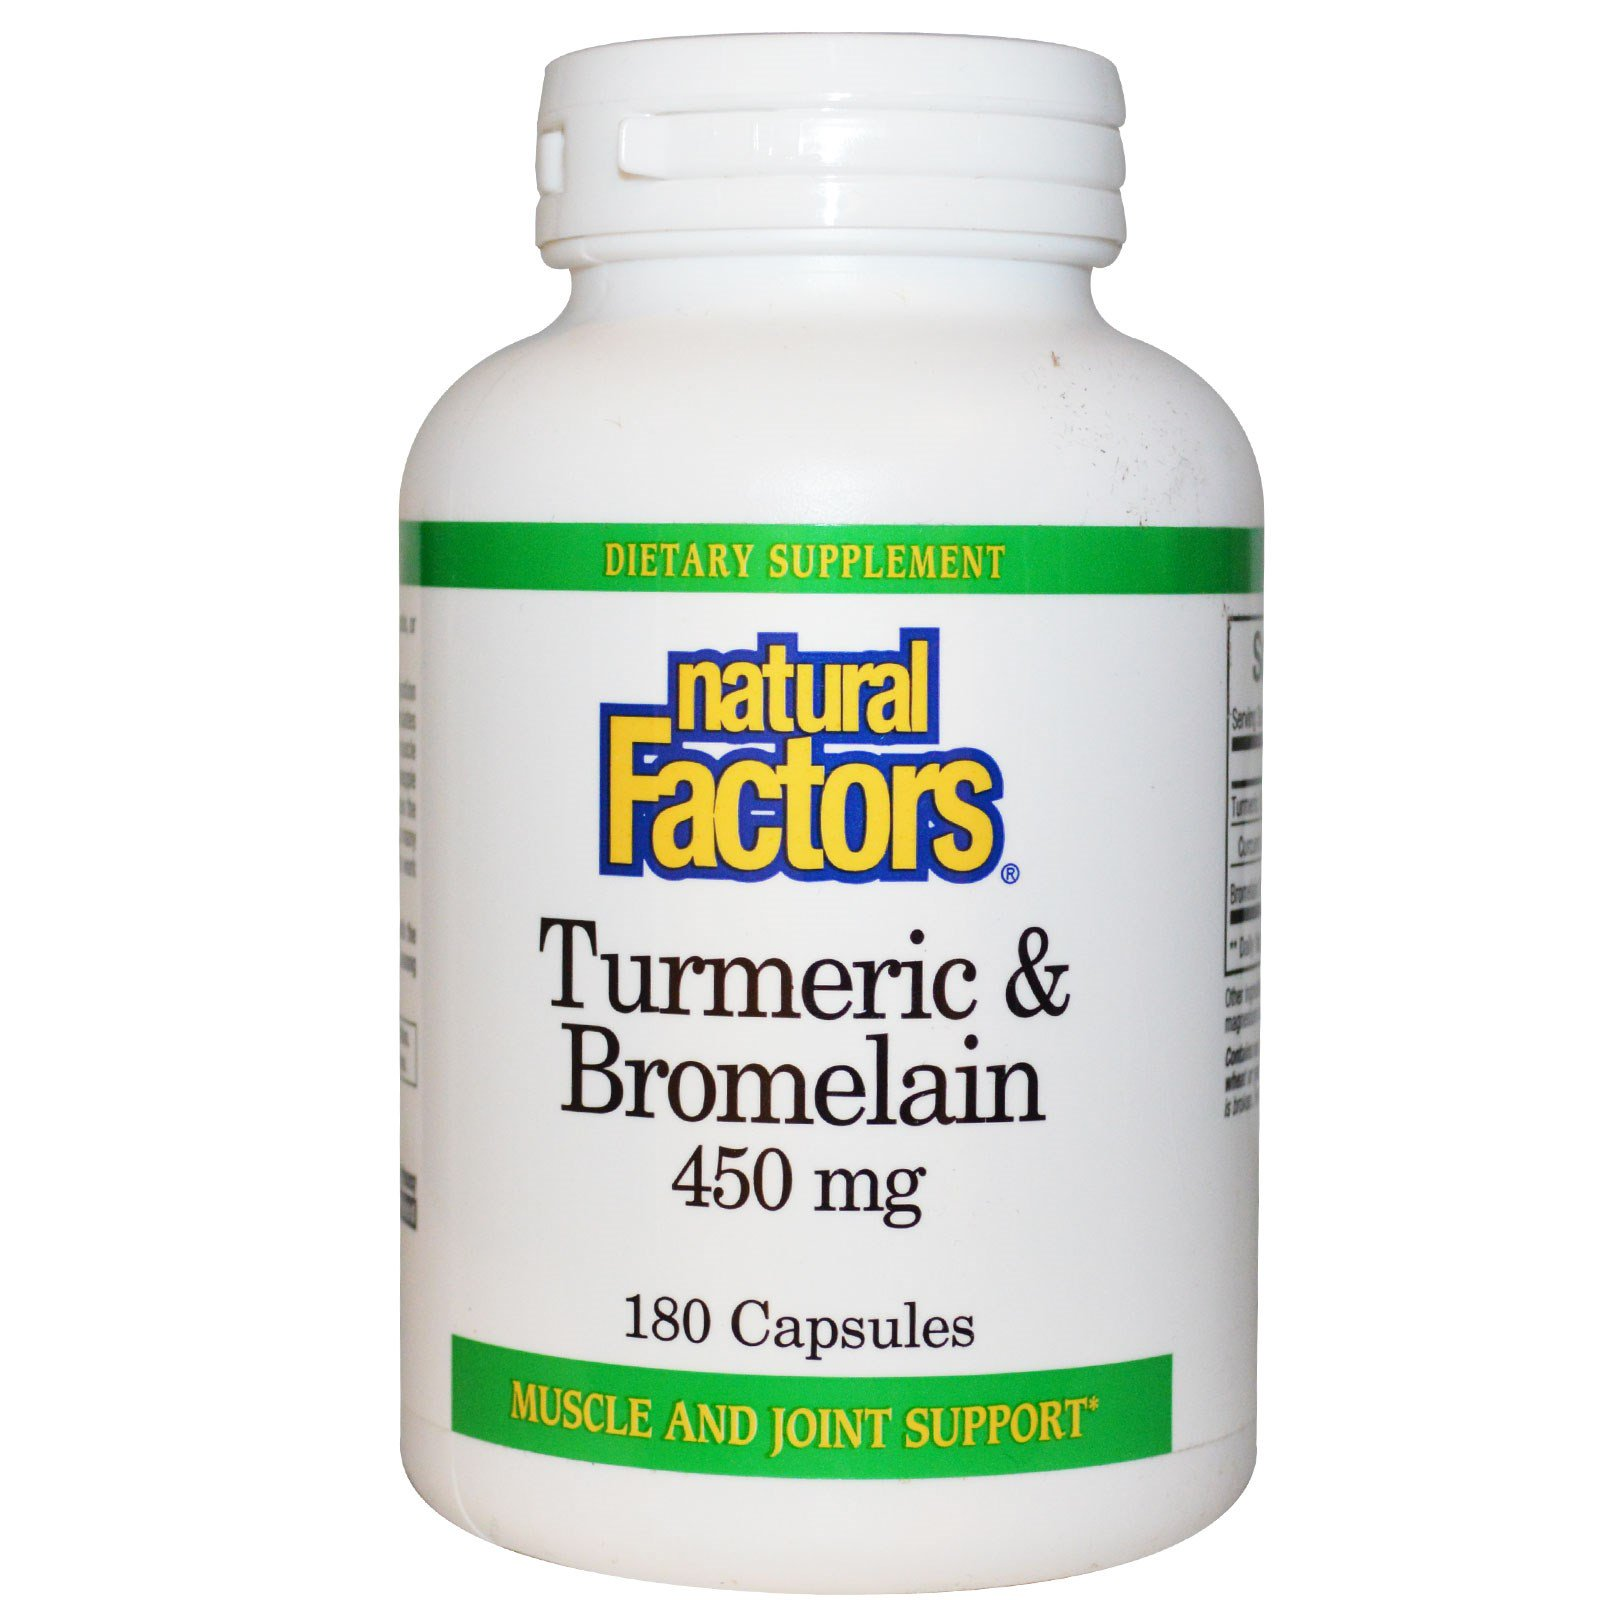 Natural Factors Curcumin Reviews